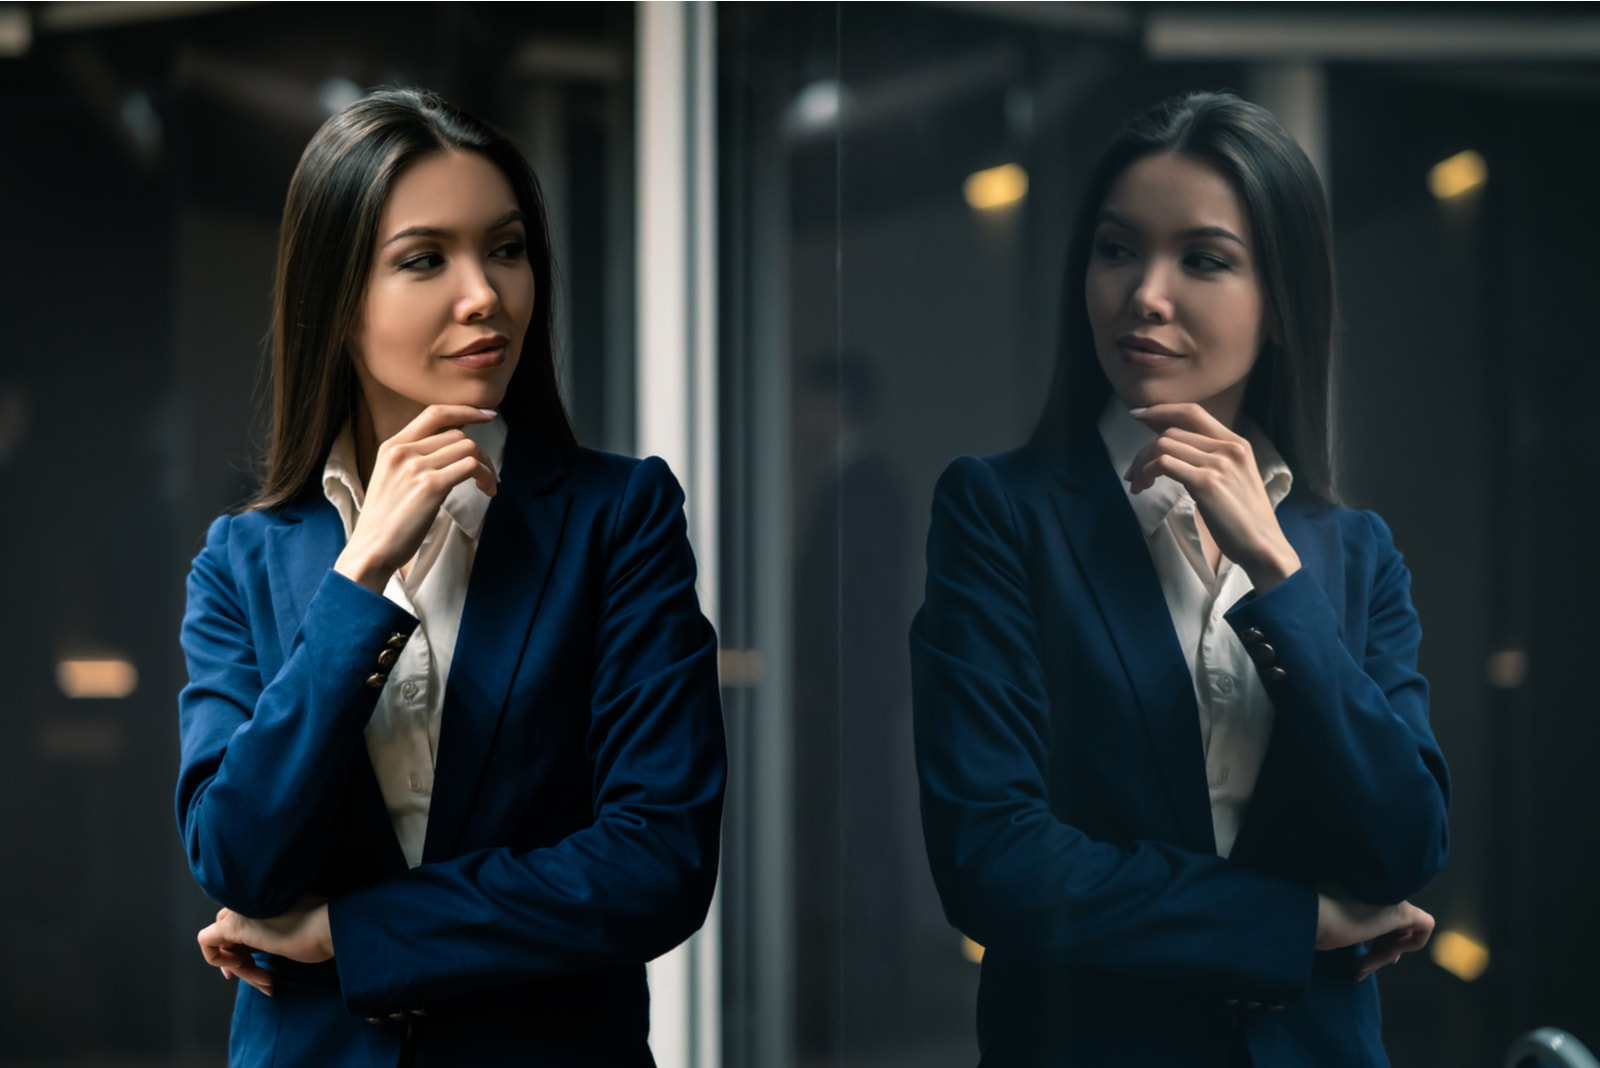 a determined businesswoman looks at herself in the glass with a smile